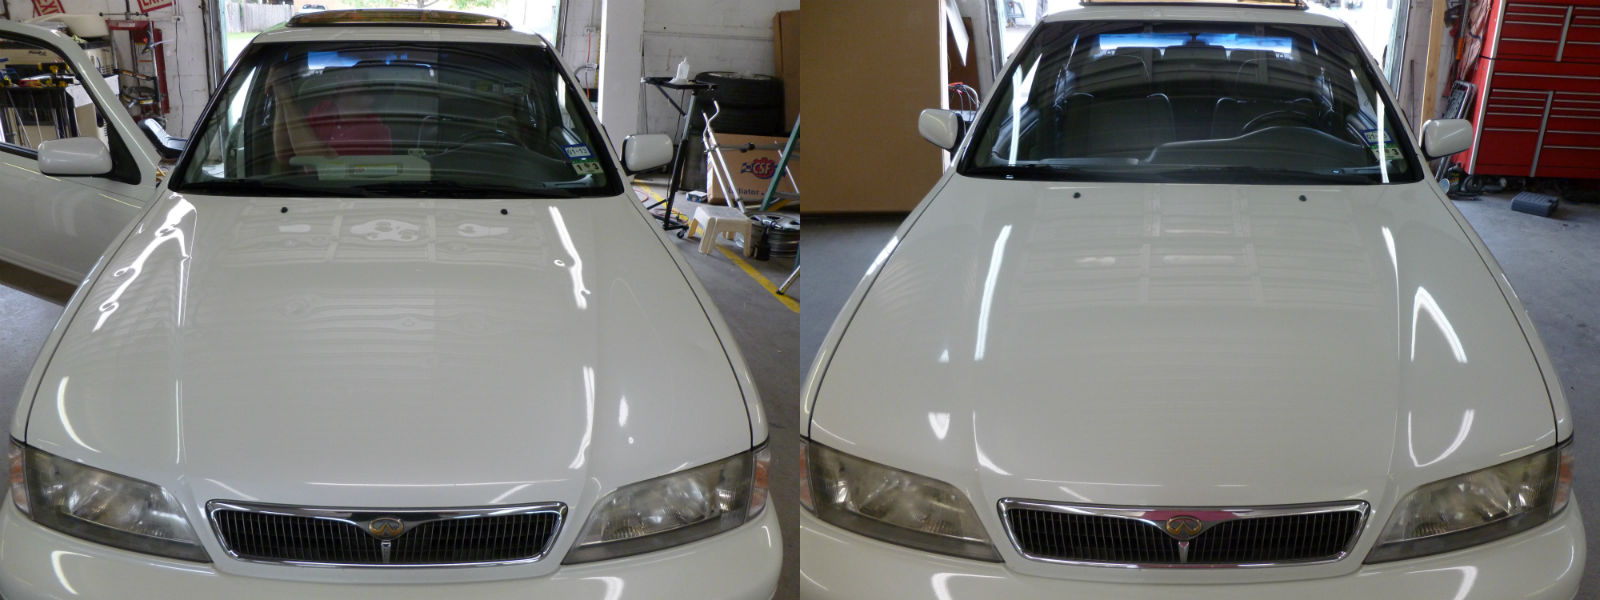 How Much Does It Cost To Paint A Car >> 2001 Infiniti G20 Hood with Hail Damage Before and After ...